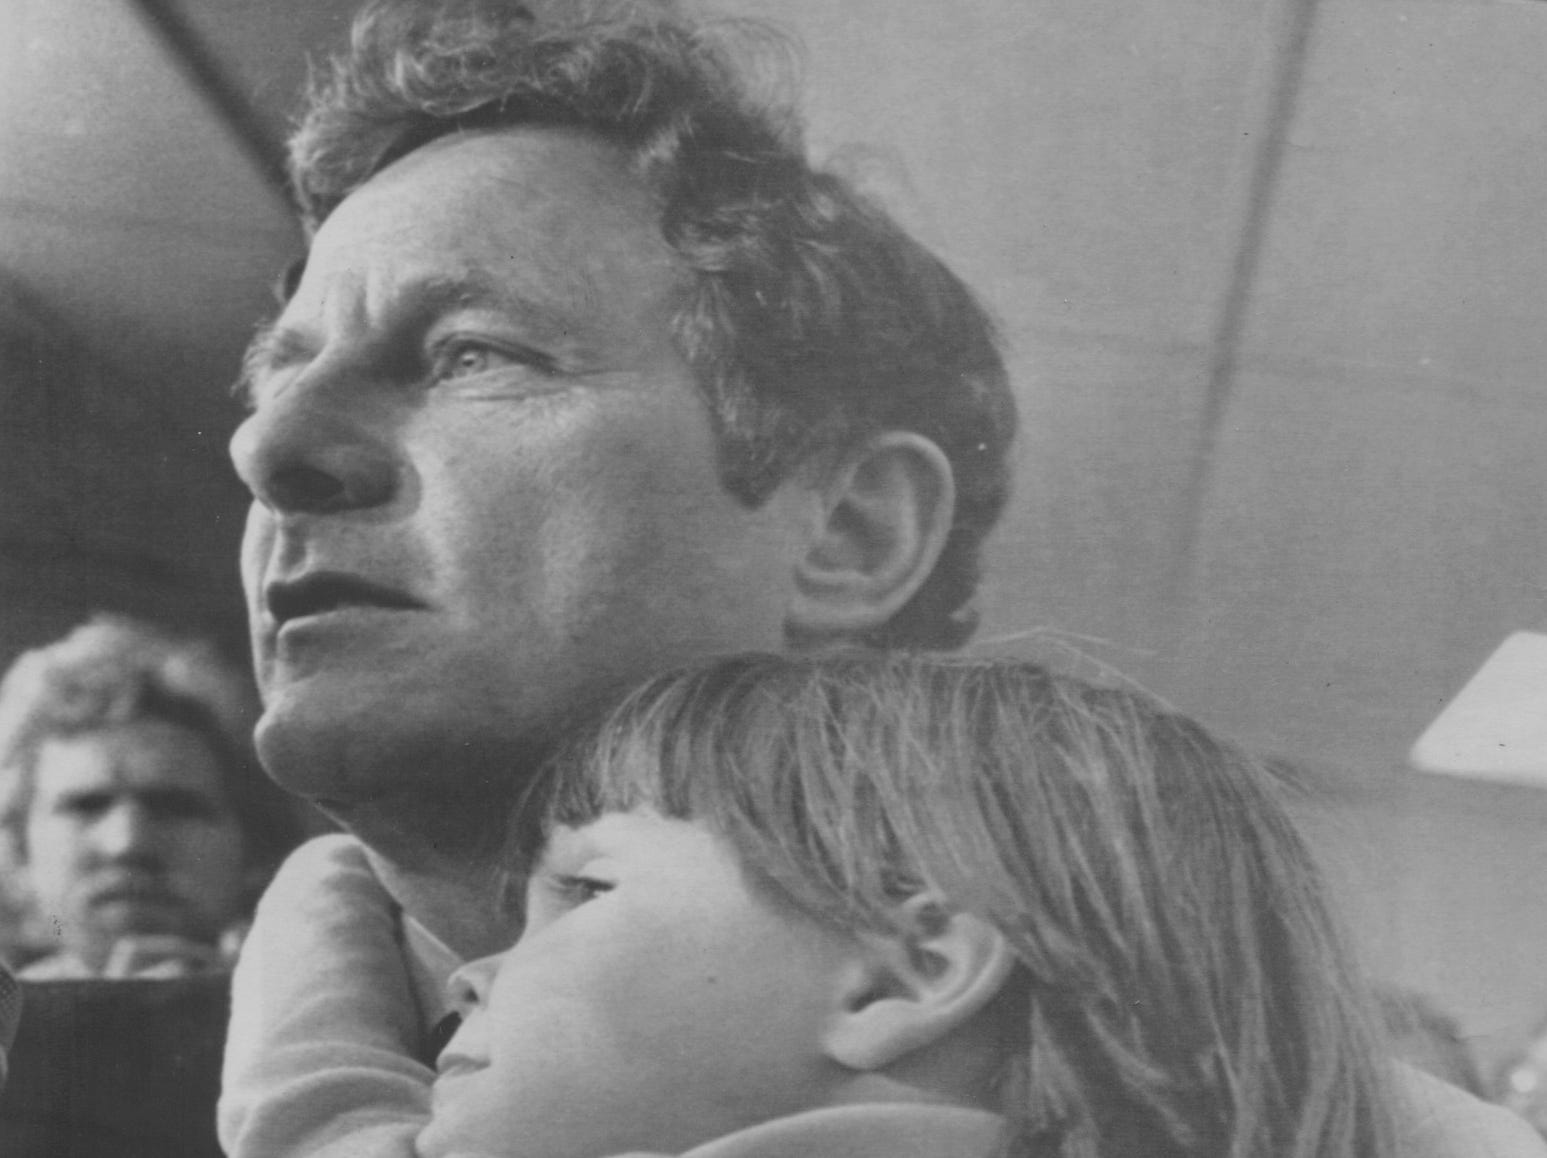 Nov. 5, 1980: Sen. Birch Bayh, D-Ind., holds 4-year-old Casey Senden of Indianapolis as he greets campaign workers and the news media after losing his Senate seat to Republican Dan Qualye of Fort Wayne. Bayh was seeking an unprecedented fourth term as senator from Indiana.